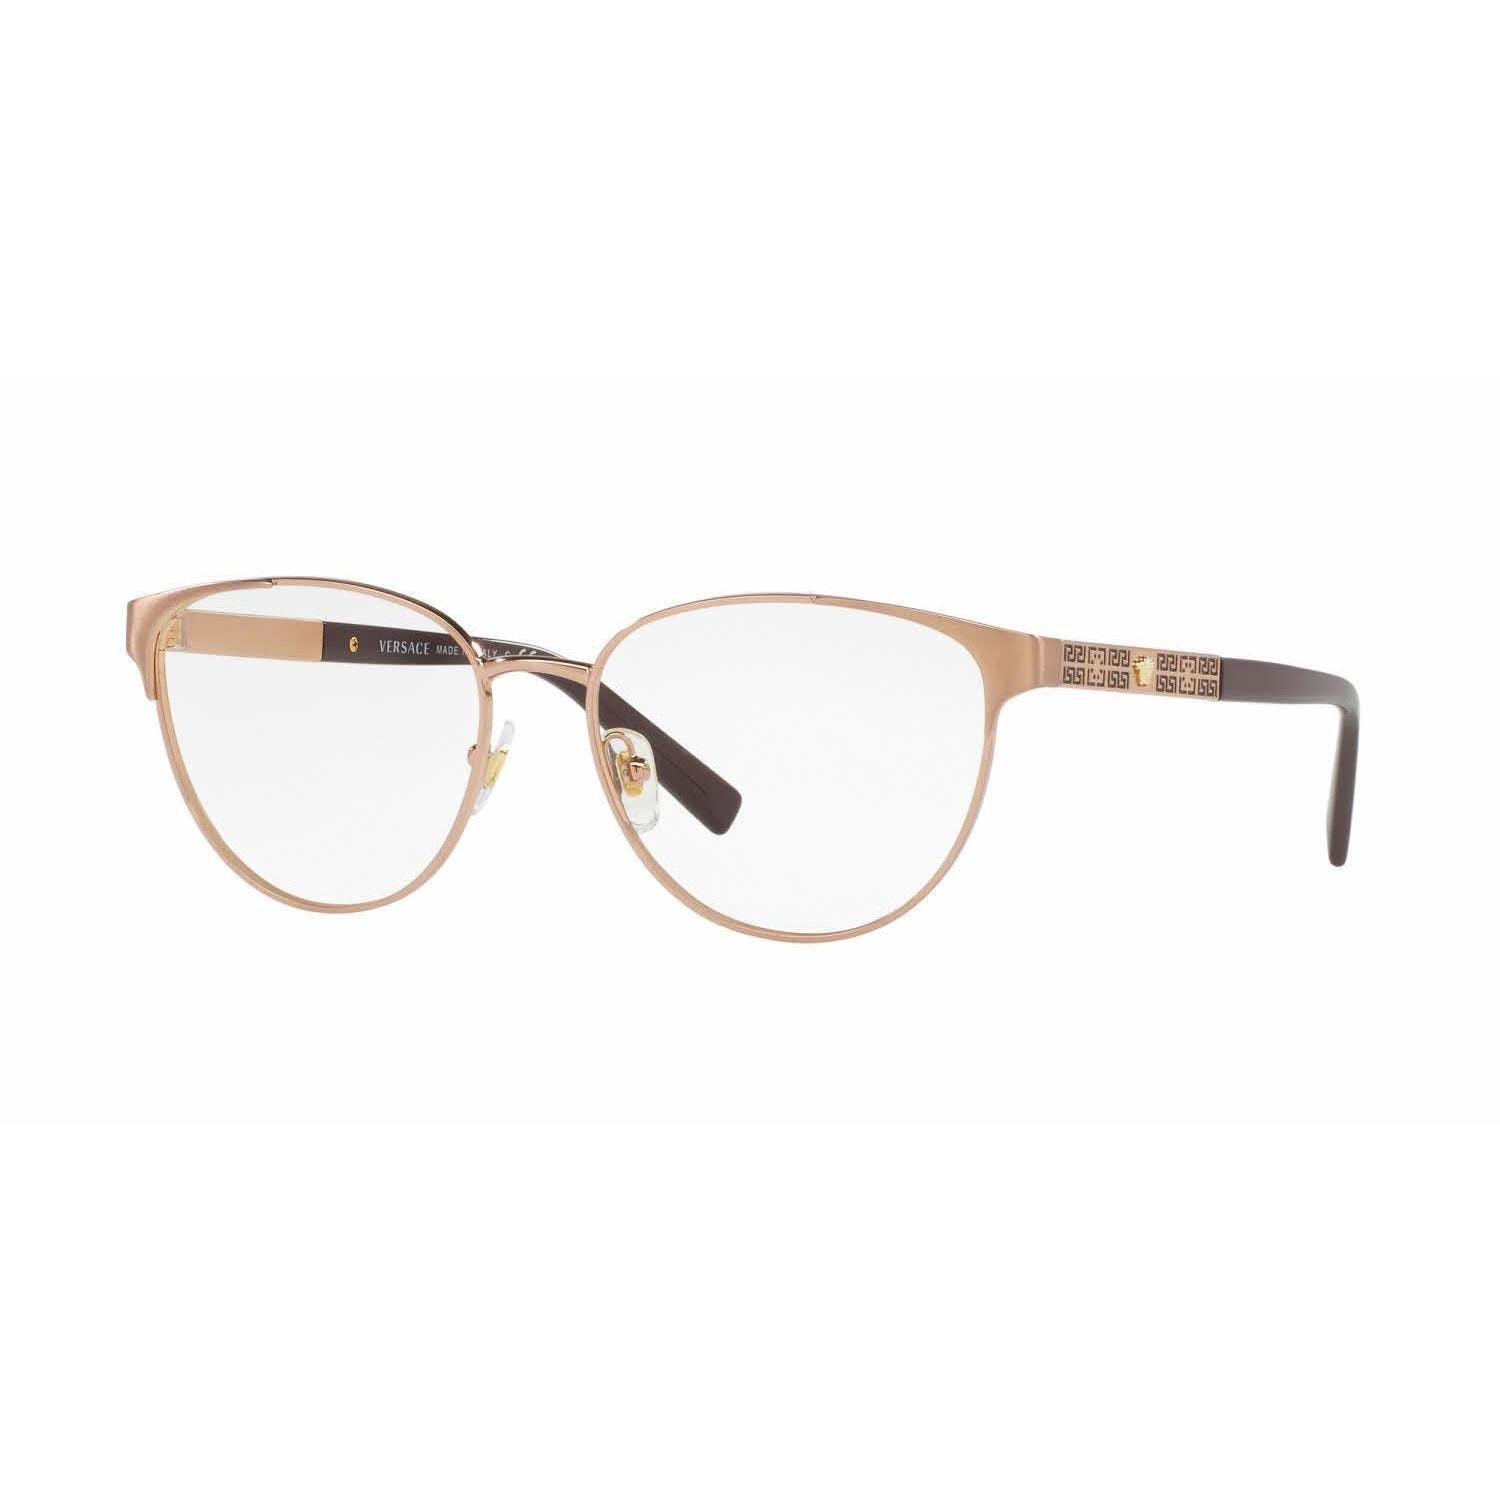 Versace Womens VE1238 1386 /Copper Phantos Eyeglasses | Products by ...